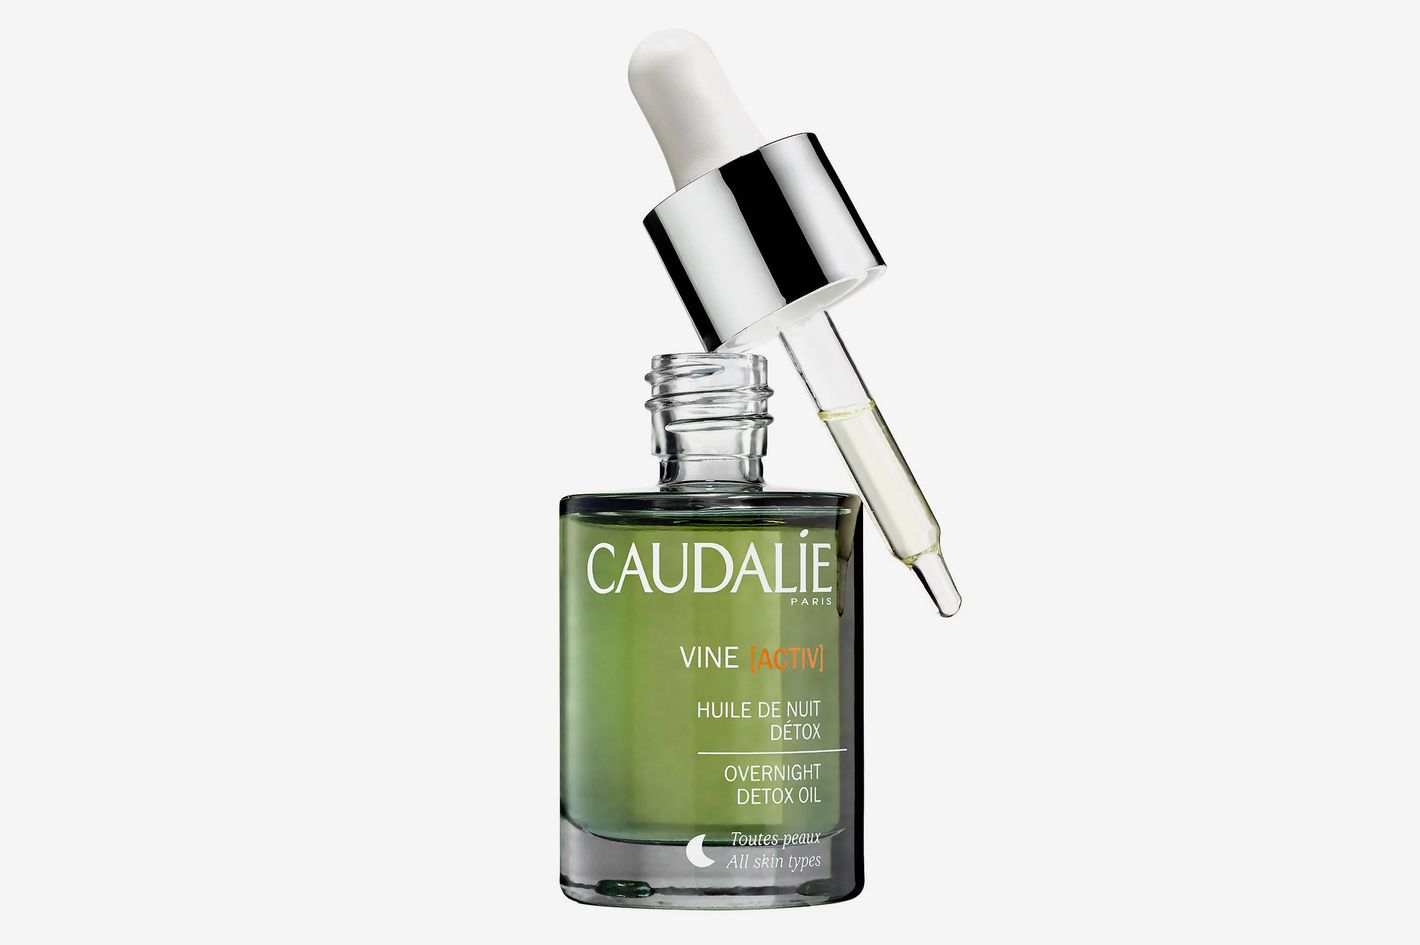 Caudalie Overnight Detox Oil